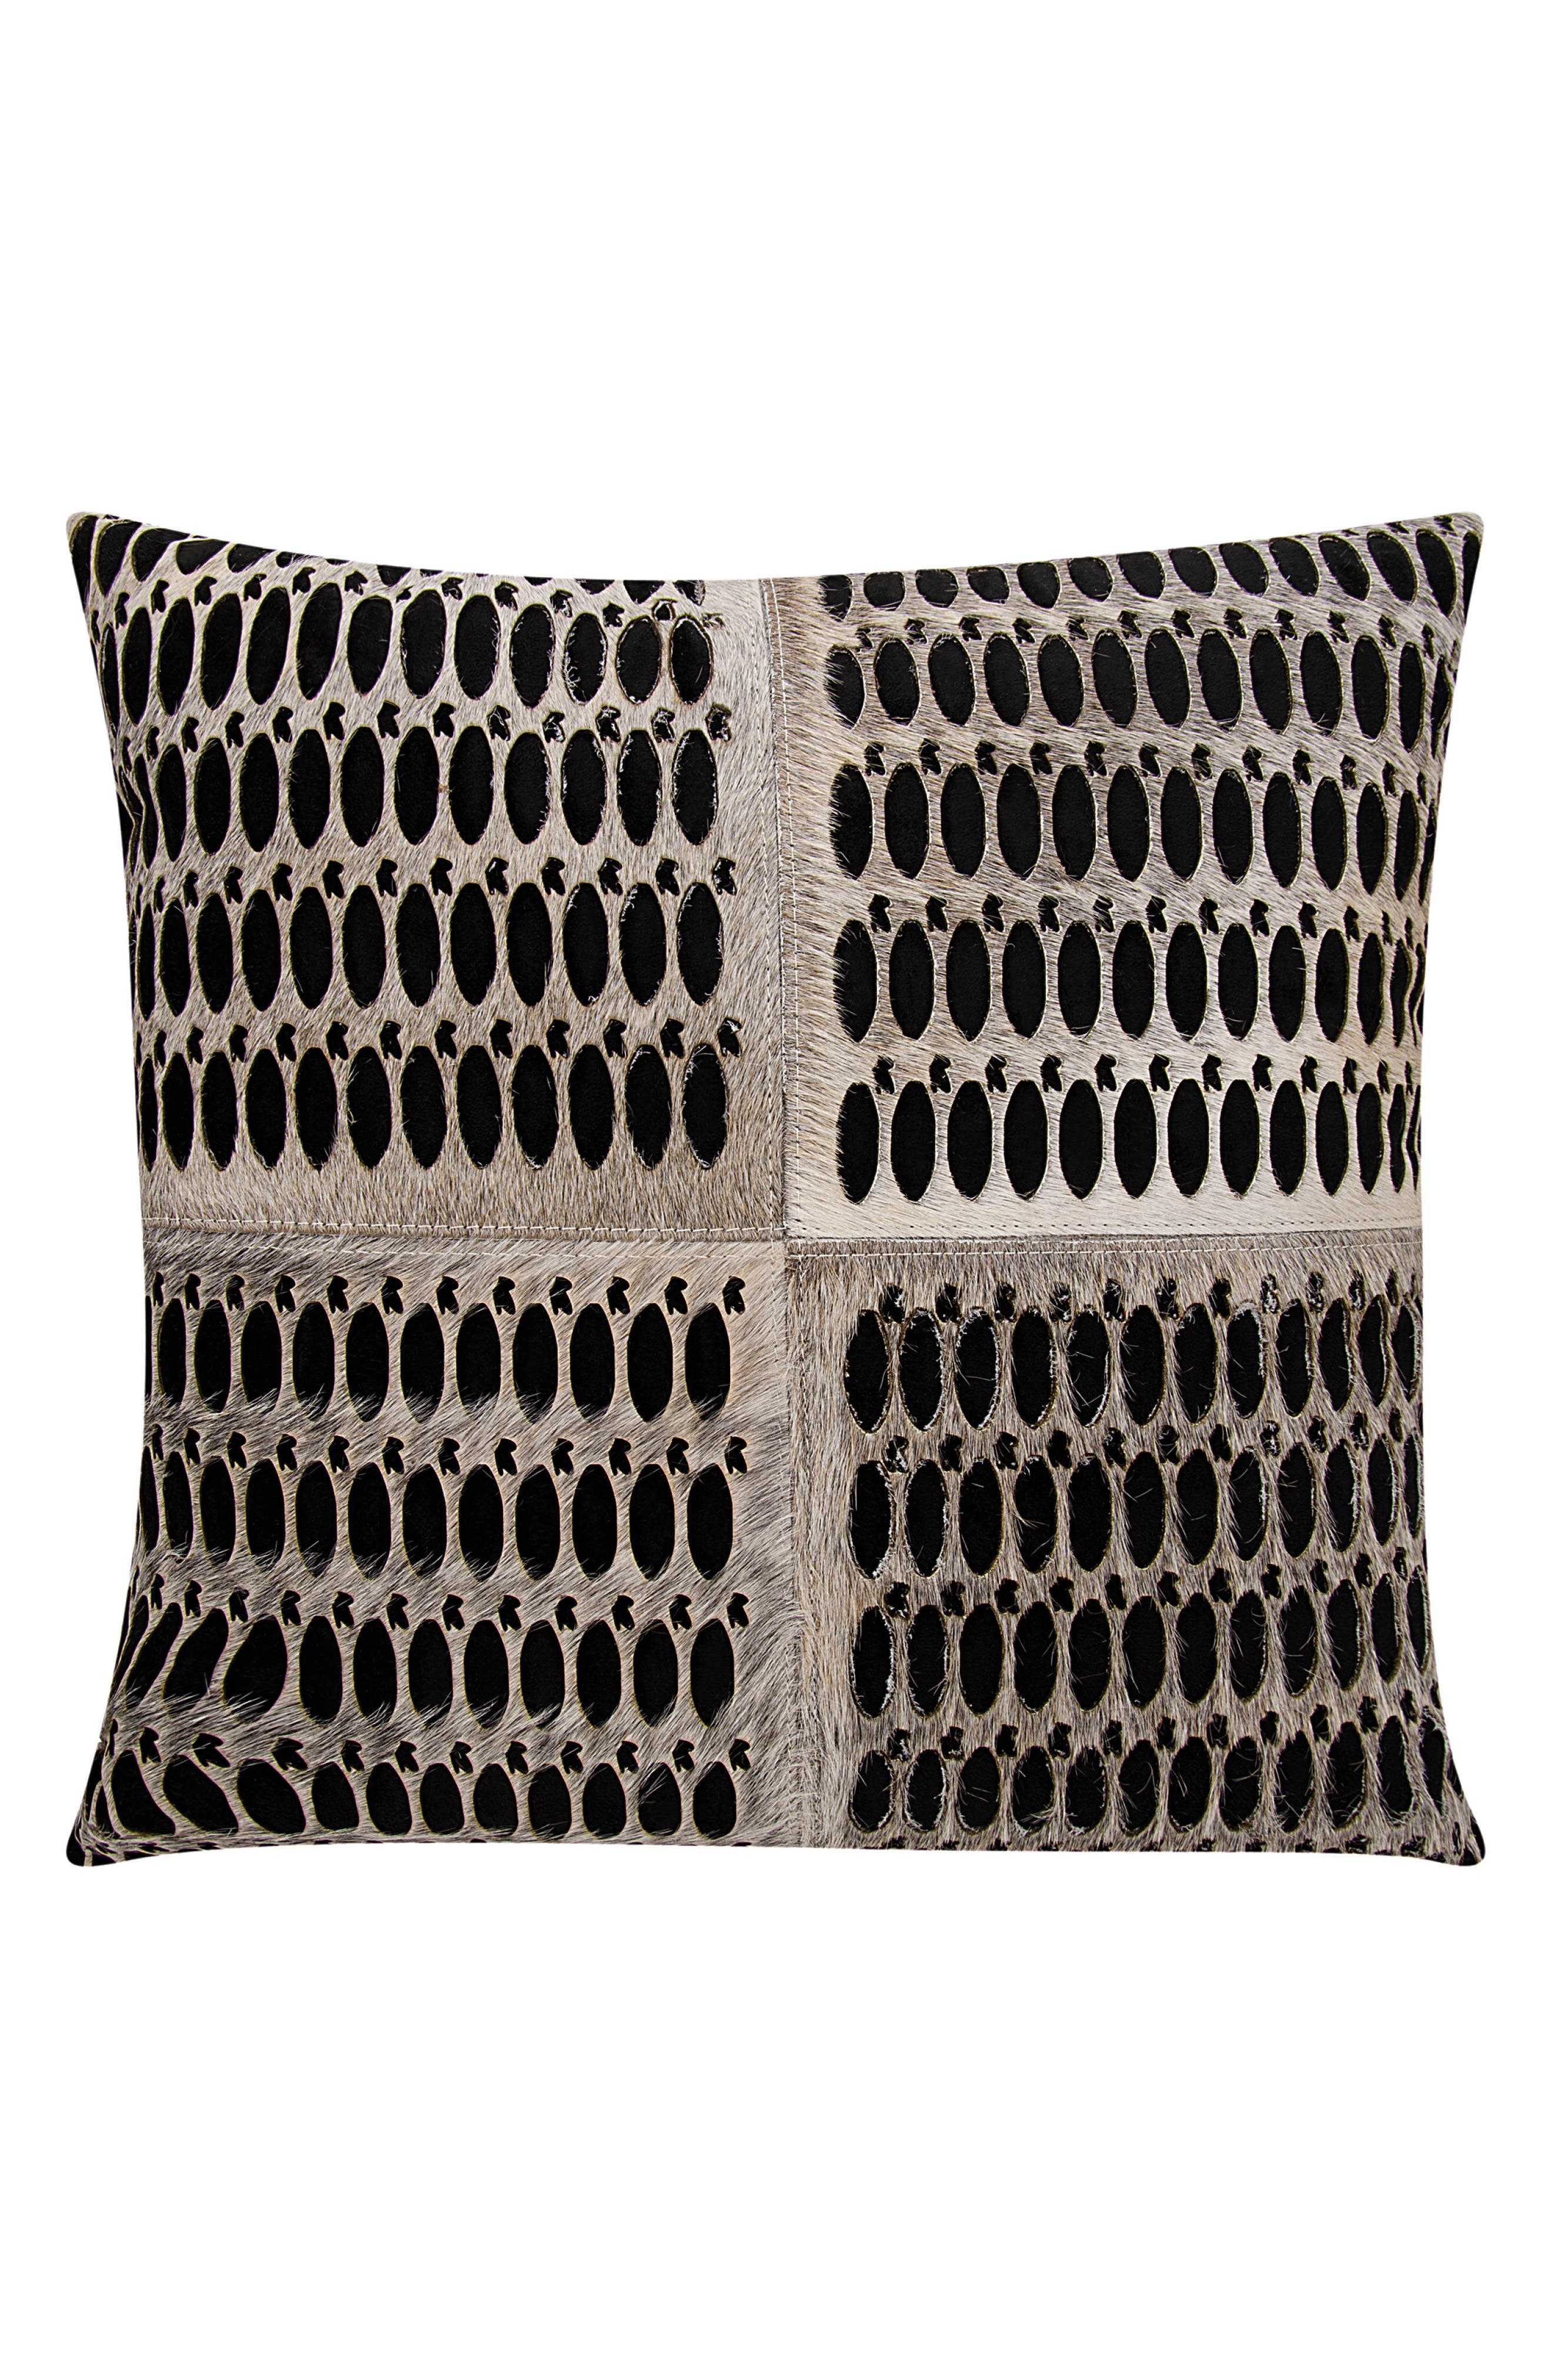 Main Image - Mina Victory Calf Hair Accent Pillow